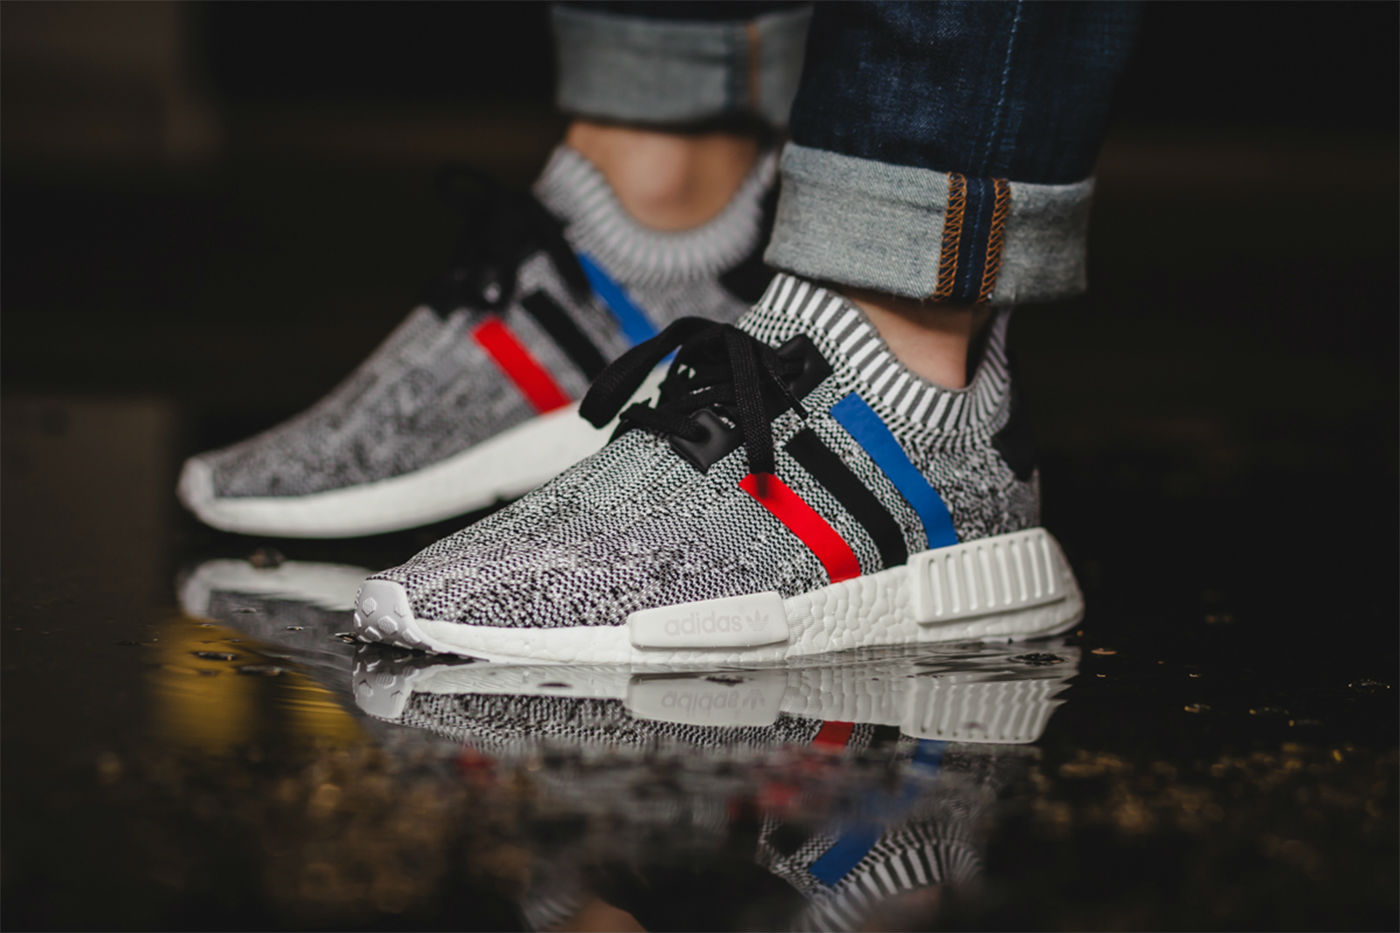 Adidas NMD R1 Tricolor Pack